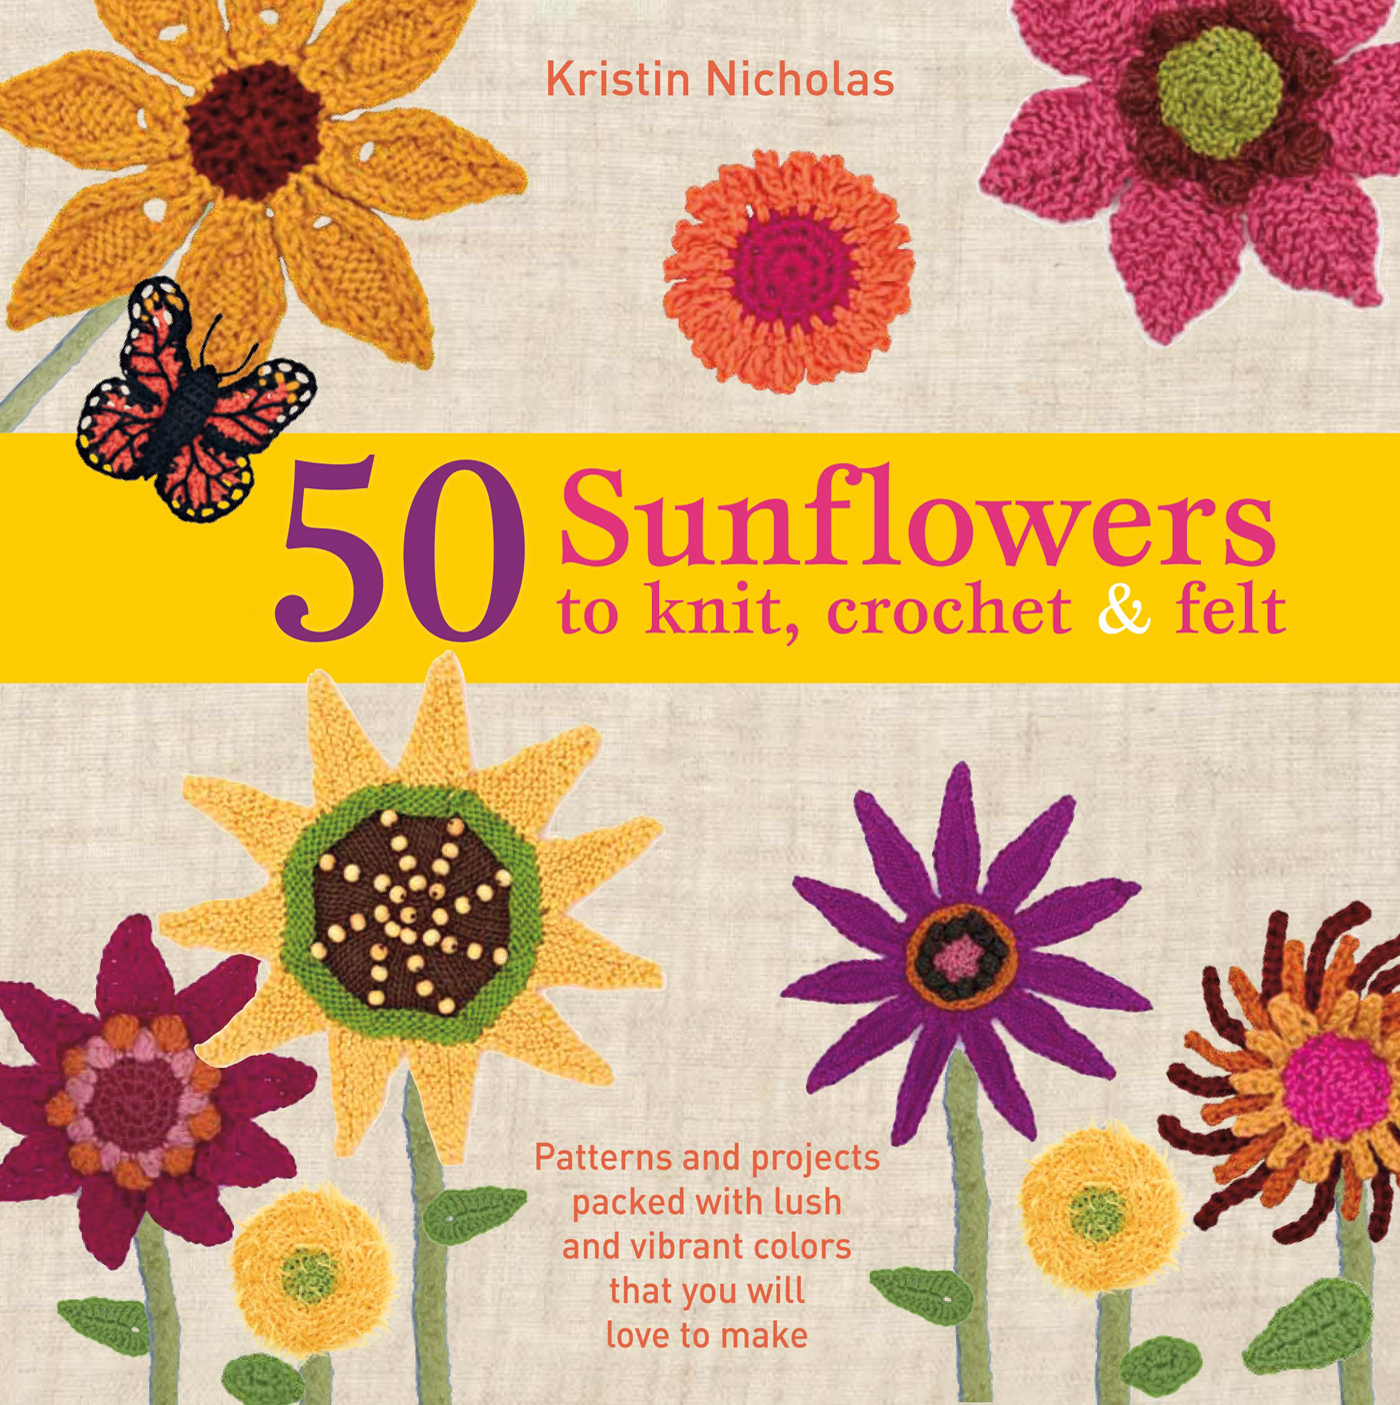 50 Sunflowers to Knit, Crochet & Felt